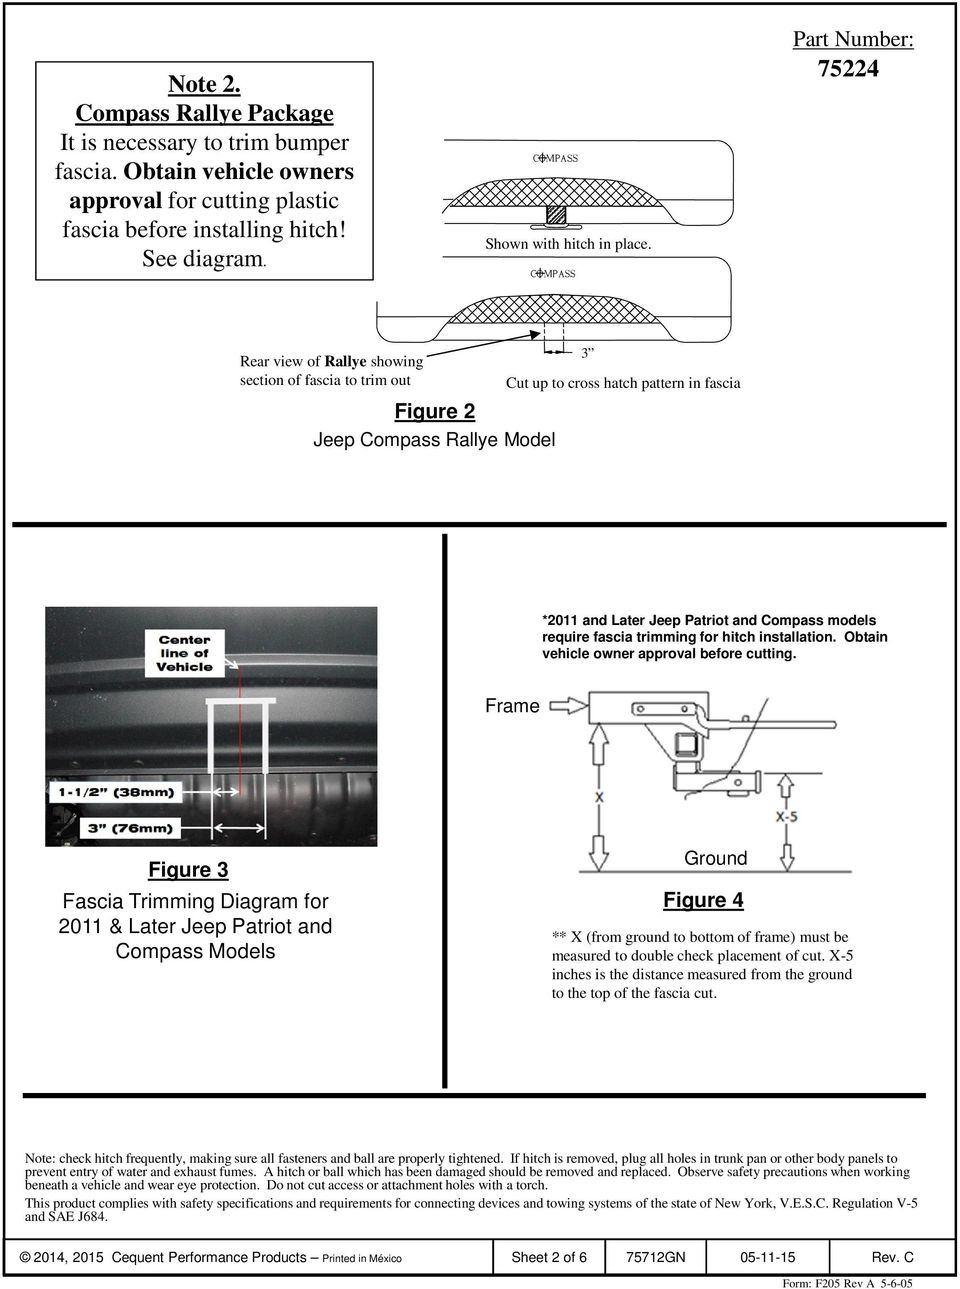 Installation Instructions Jeep Compass Inc Rallye Package Pdf Diagram 1 Black Is In Check 2 Double Fascia Trimming For Hitch Obtain Vehicle Owner Approval Before Cutting